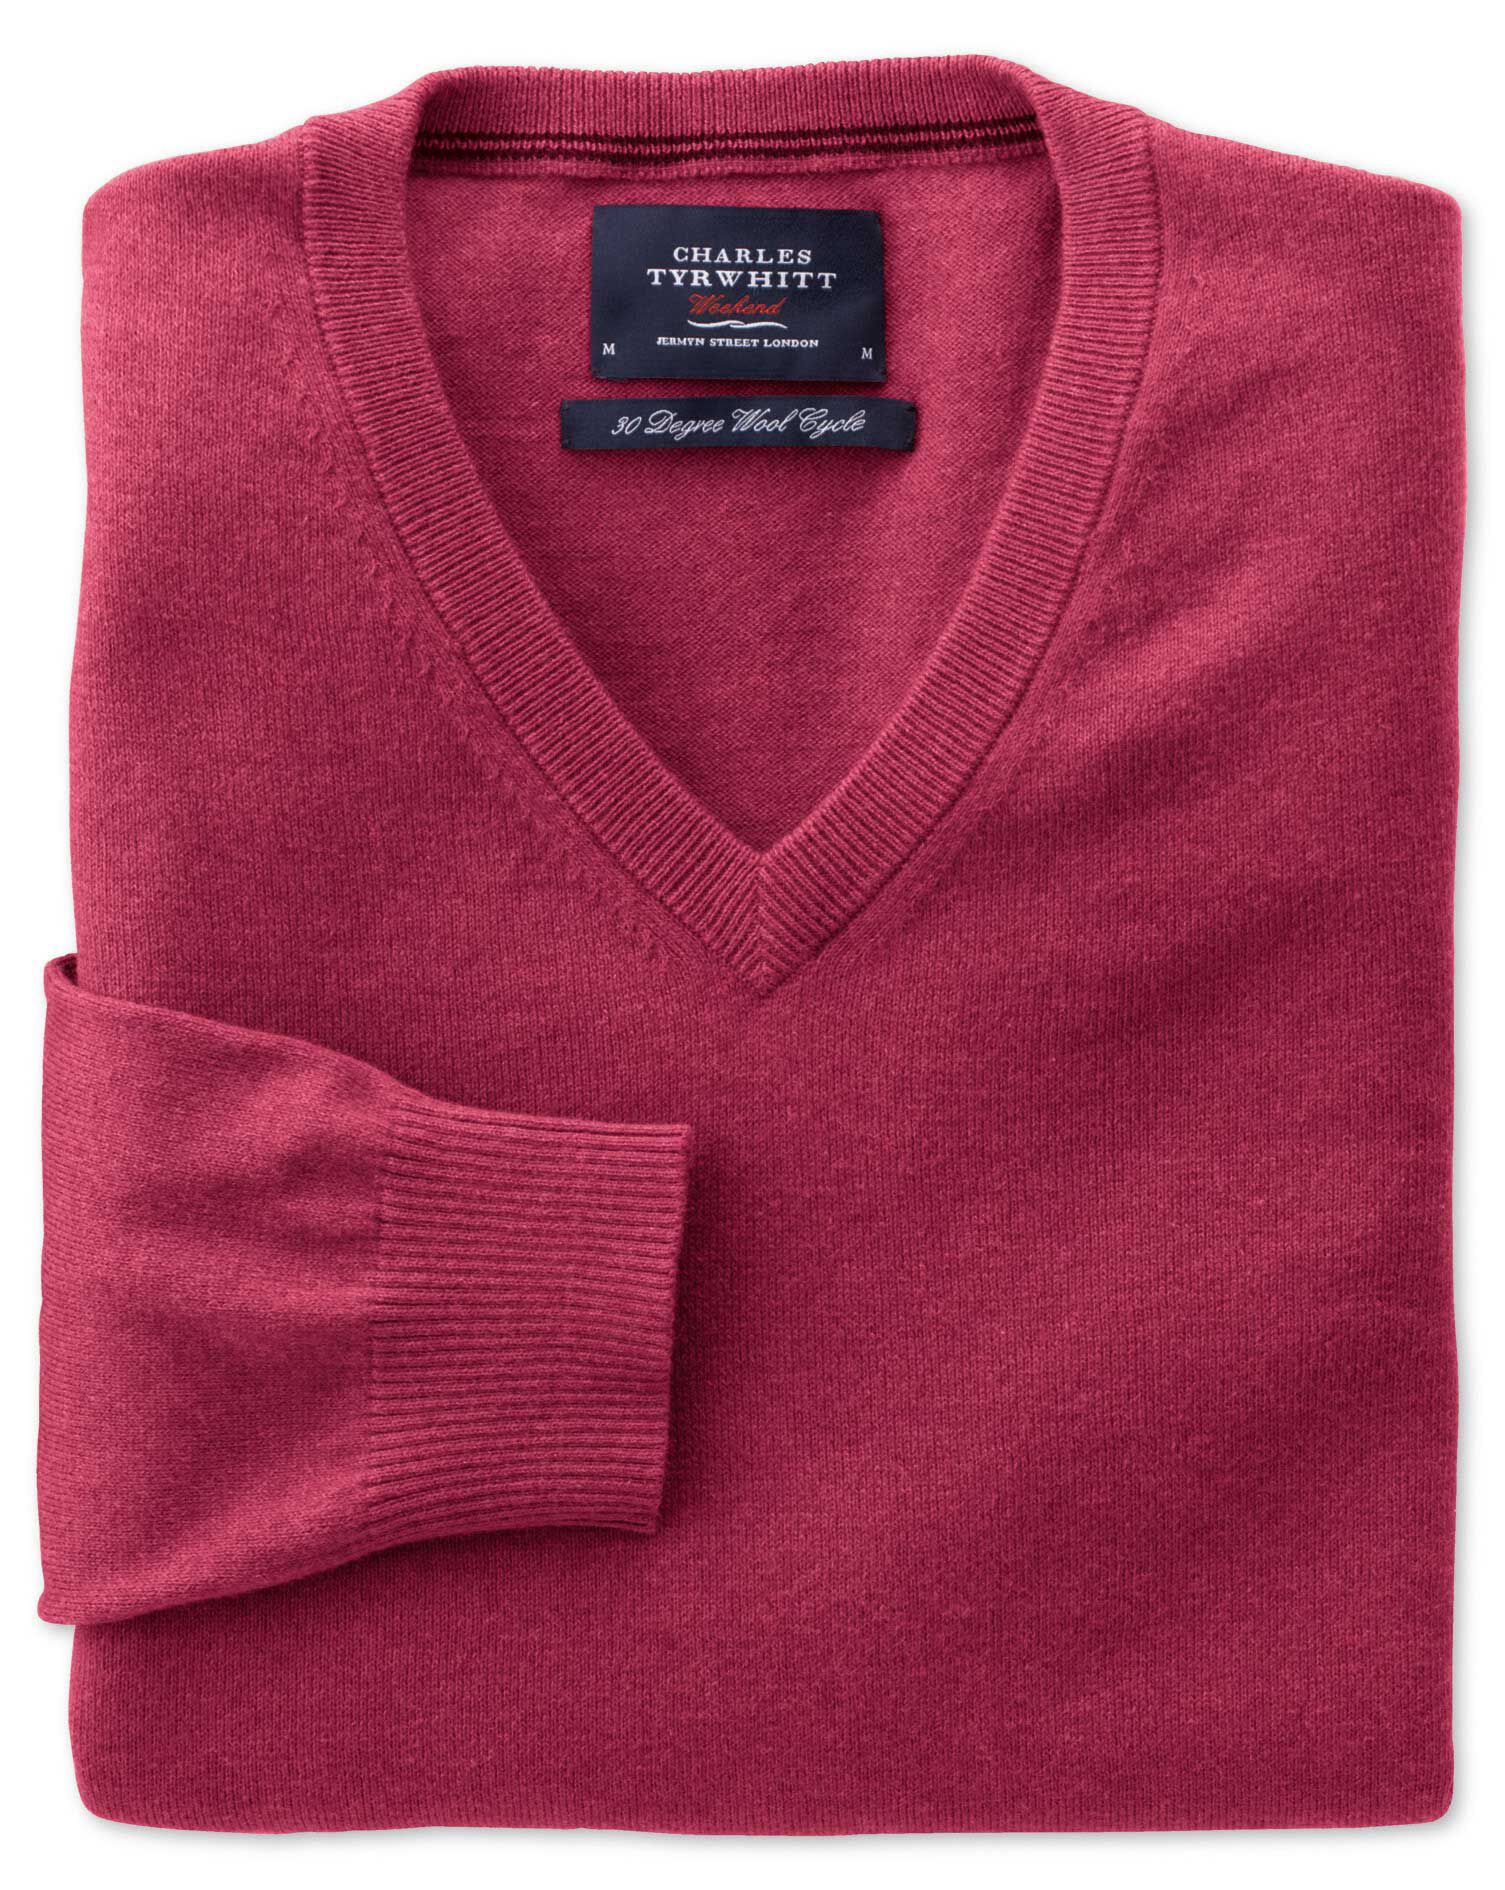 Coral Cotton Cashmere V-Neck Jumper Size Small by Charles Tyrwhitt